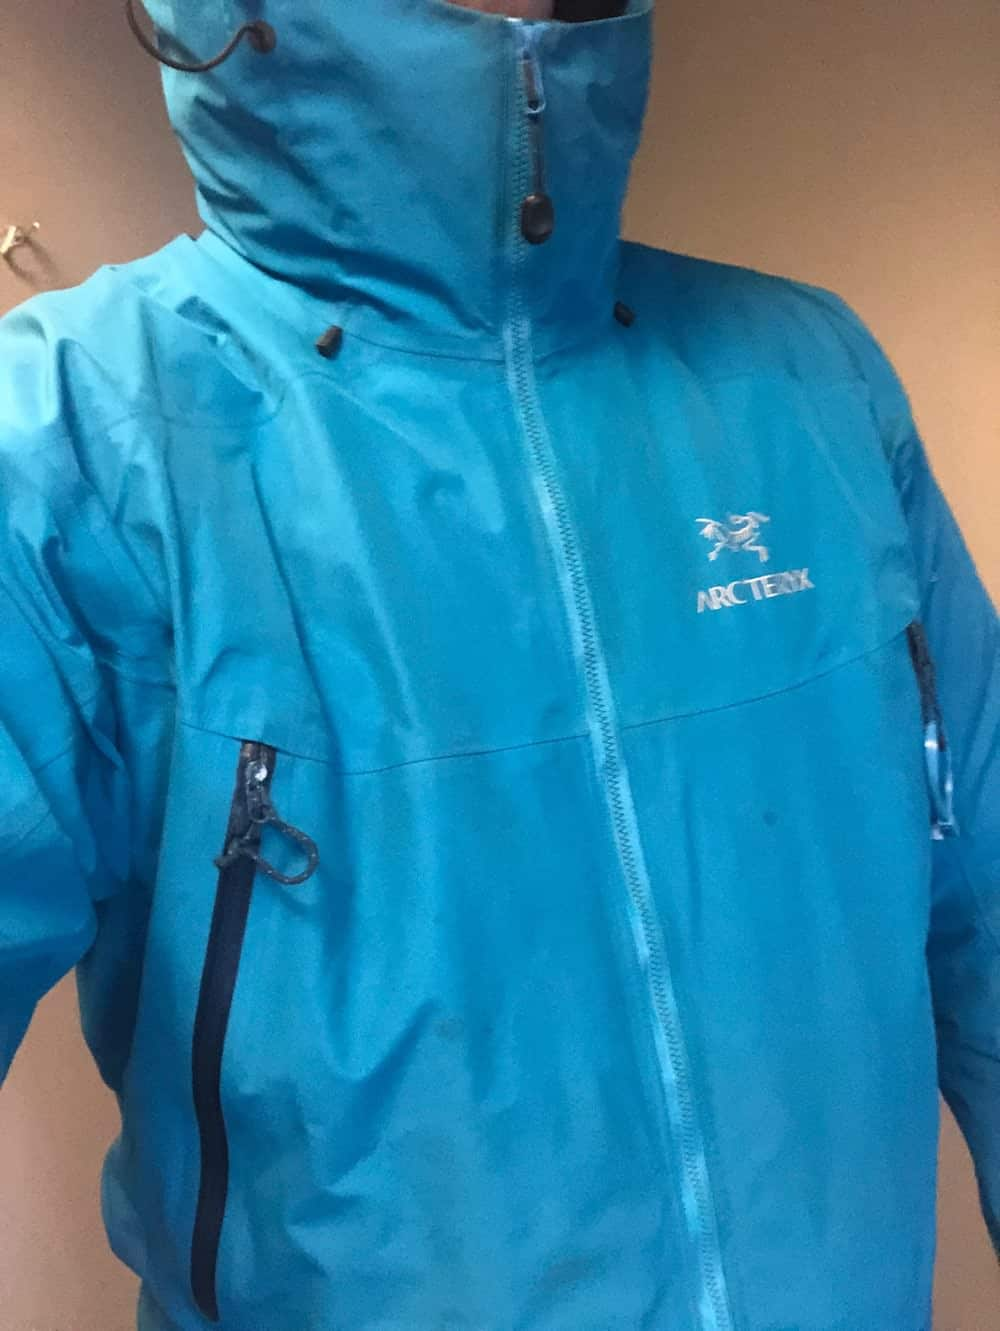 Arcteryx beta lt jacket on top of Canada Goose puffer jacket